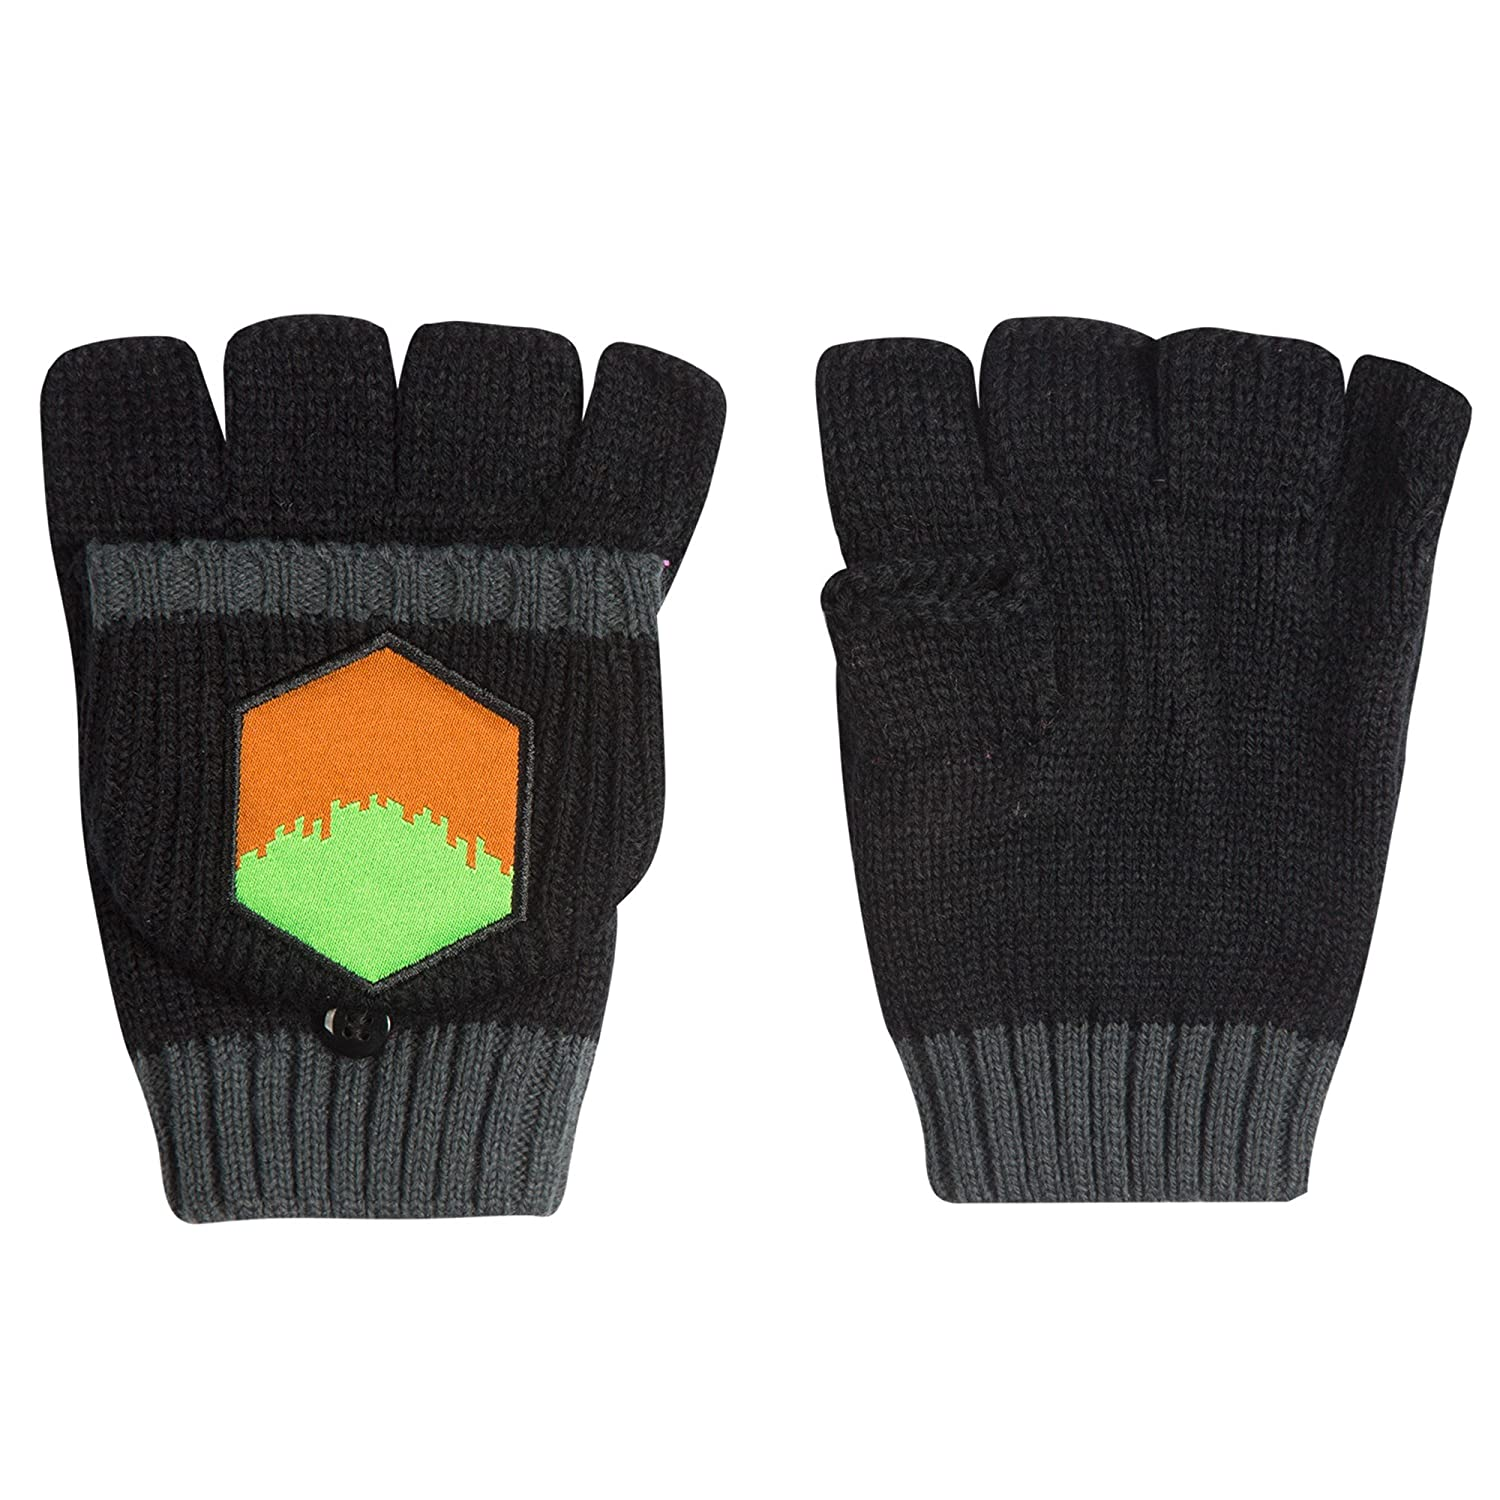 Gloves - Minecraft - Enderman Knit Mittens j6282 JINX